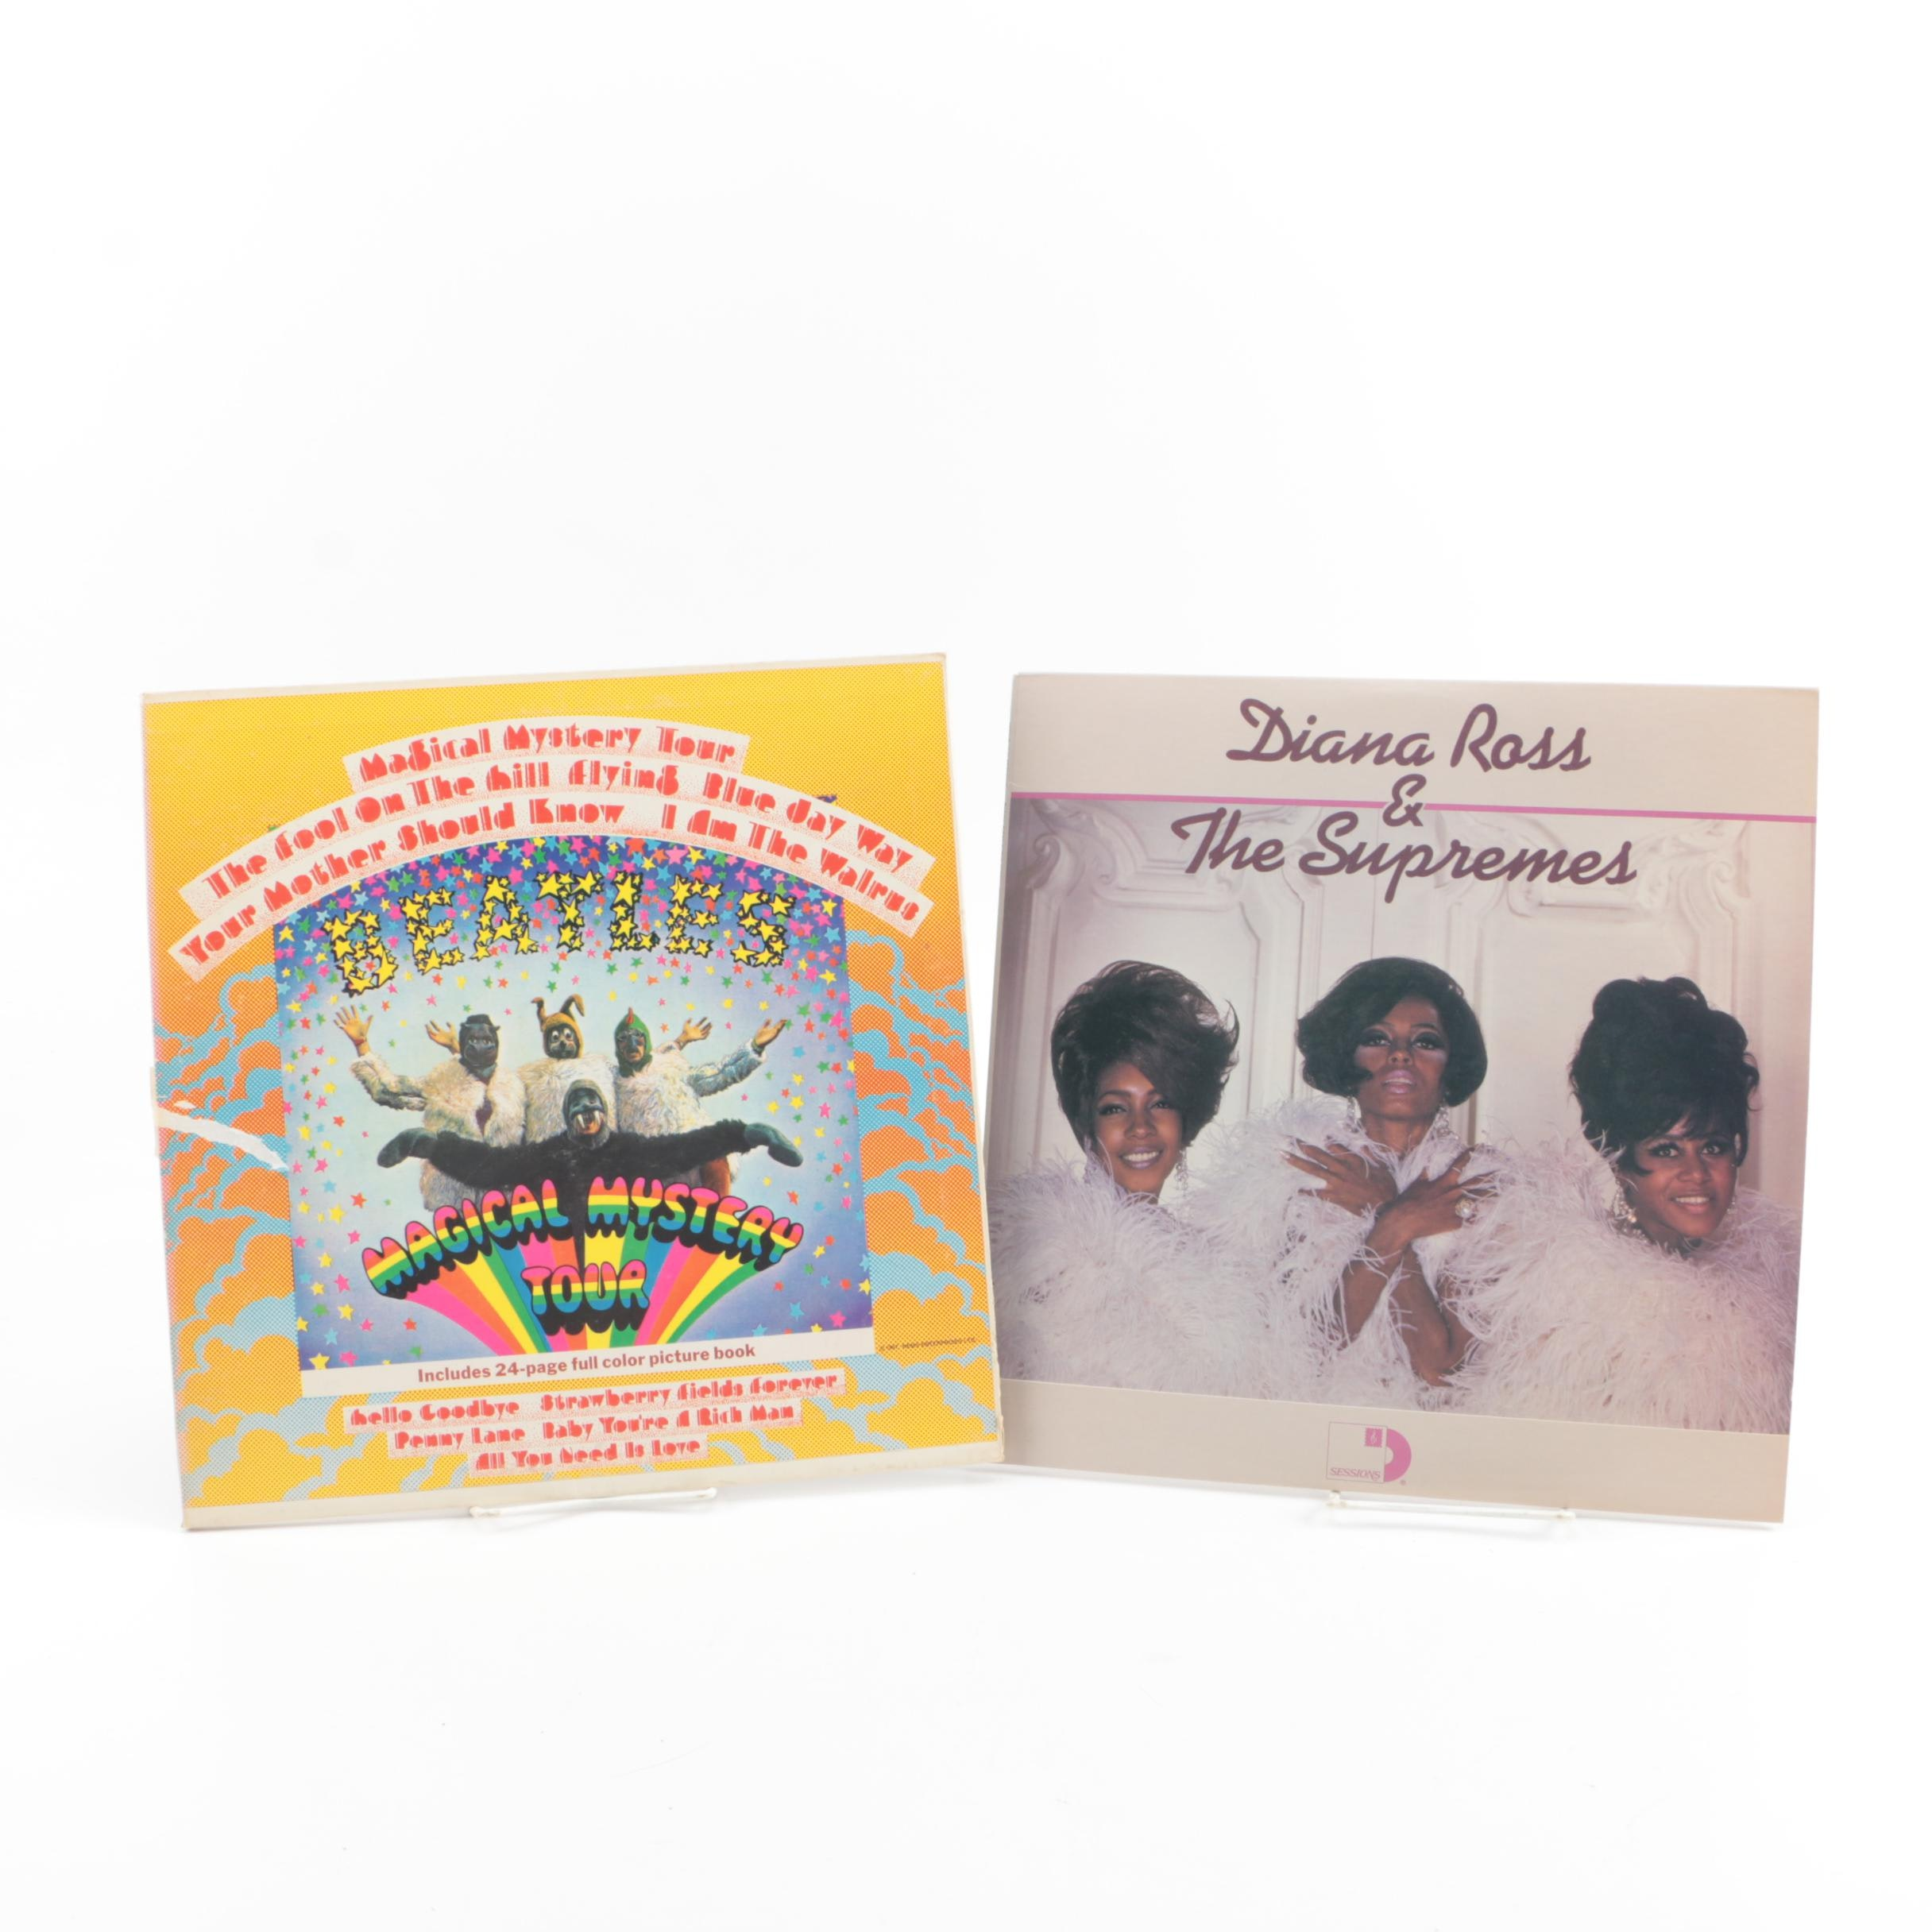 "The Beatles ""Magical Mystery Tour"" and Diana Ross & The Supremes Records"